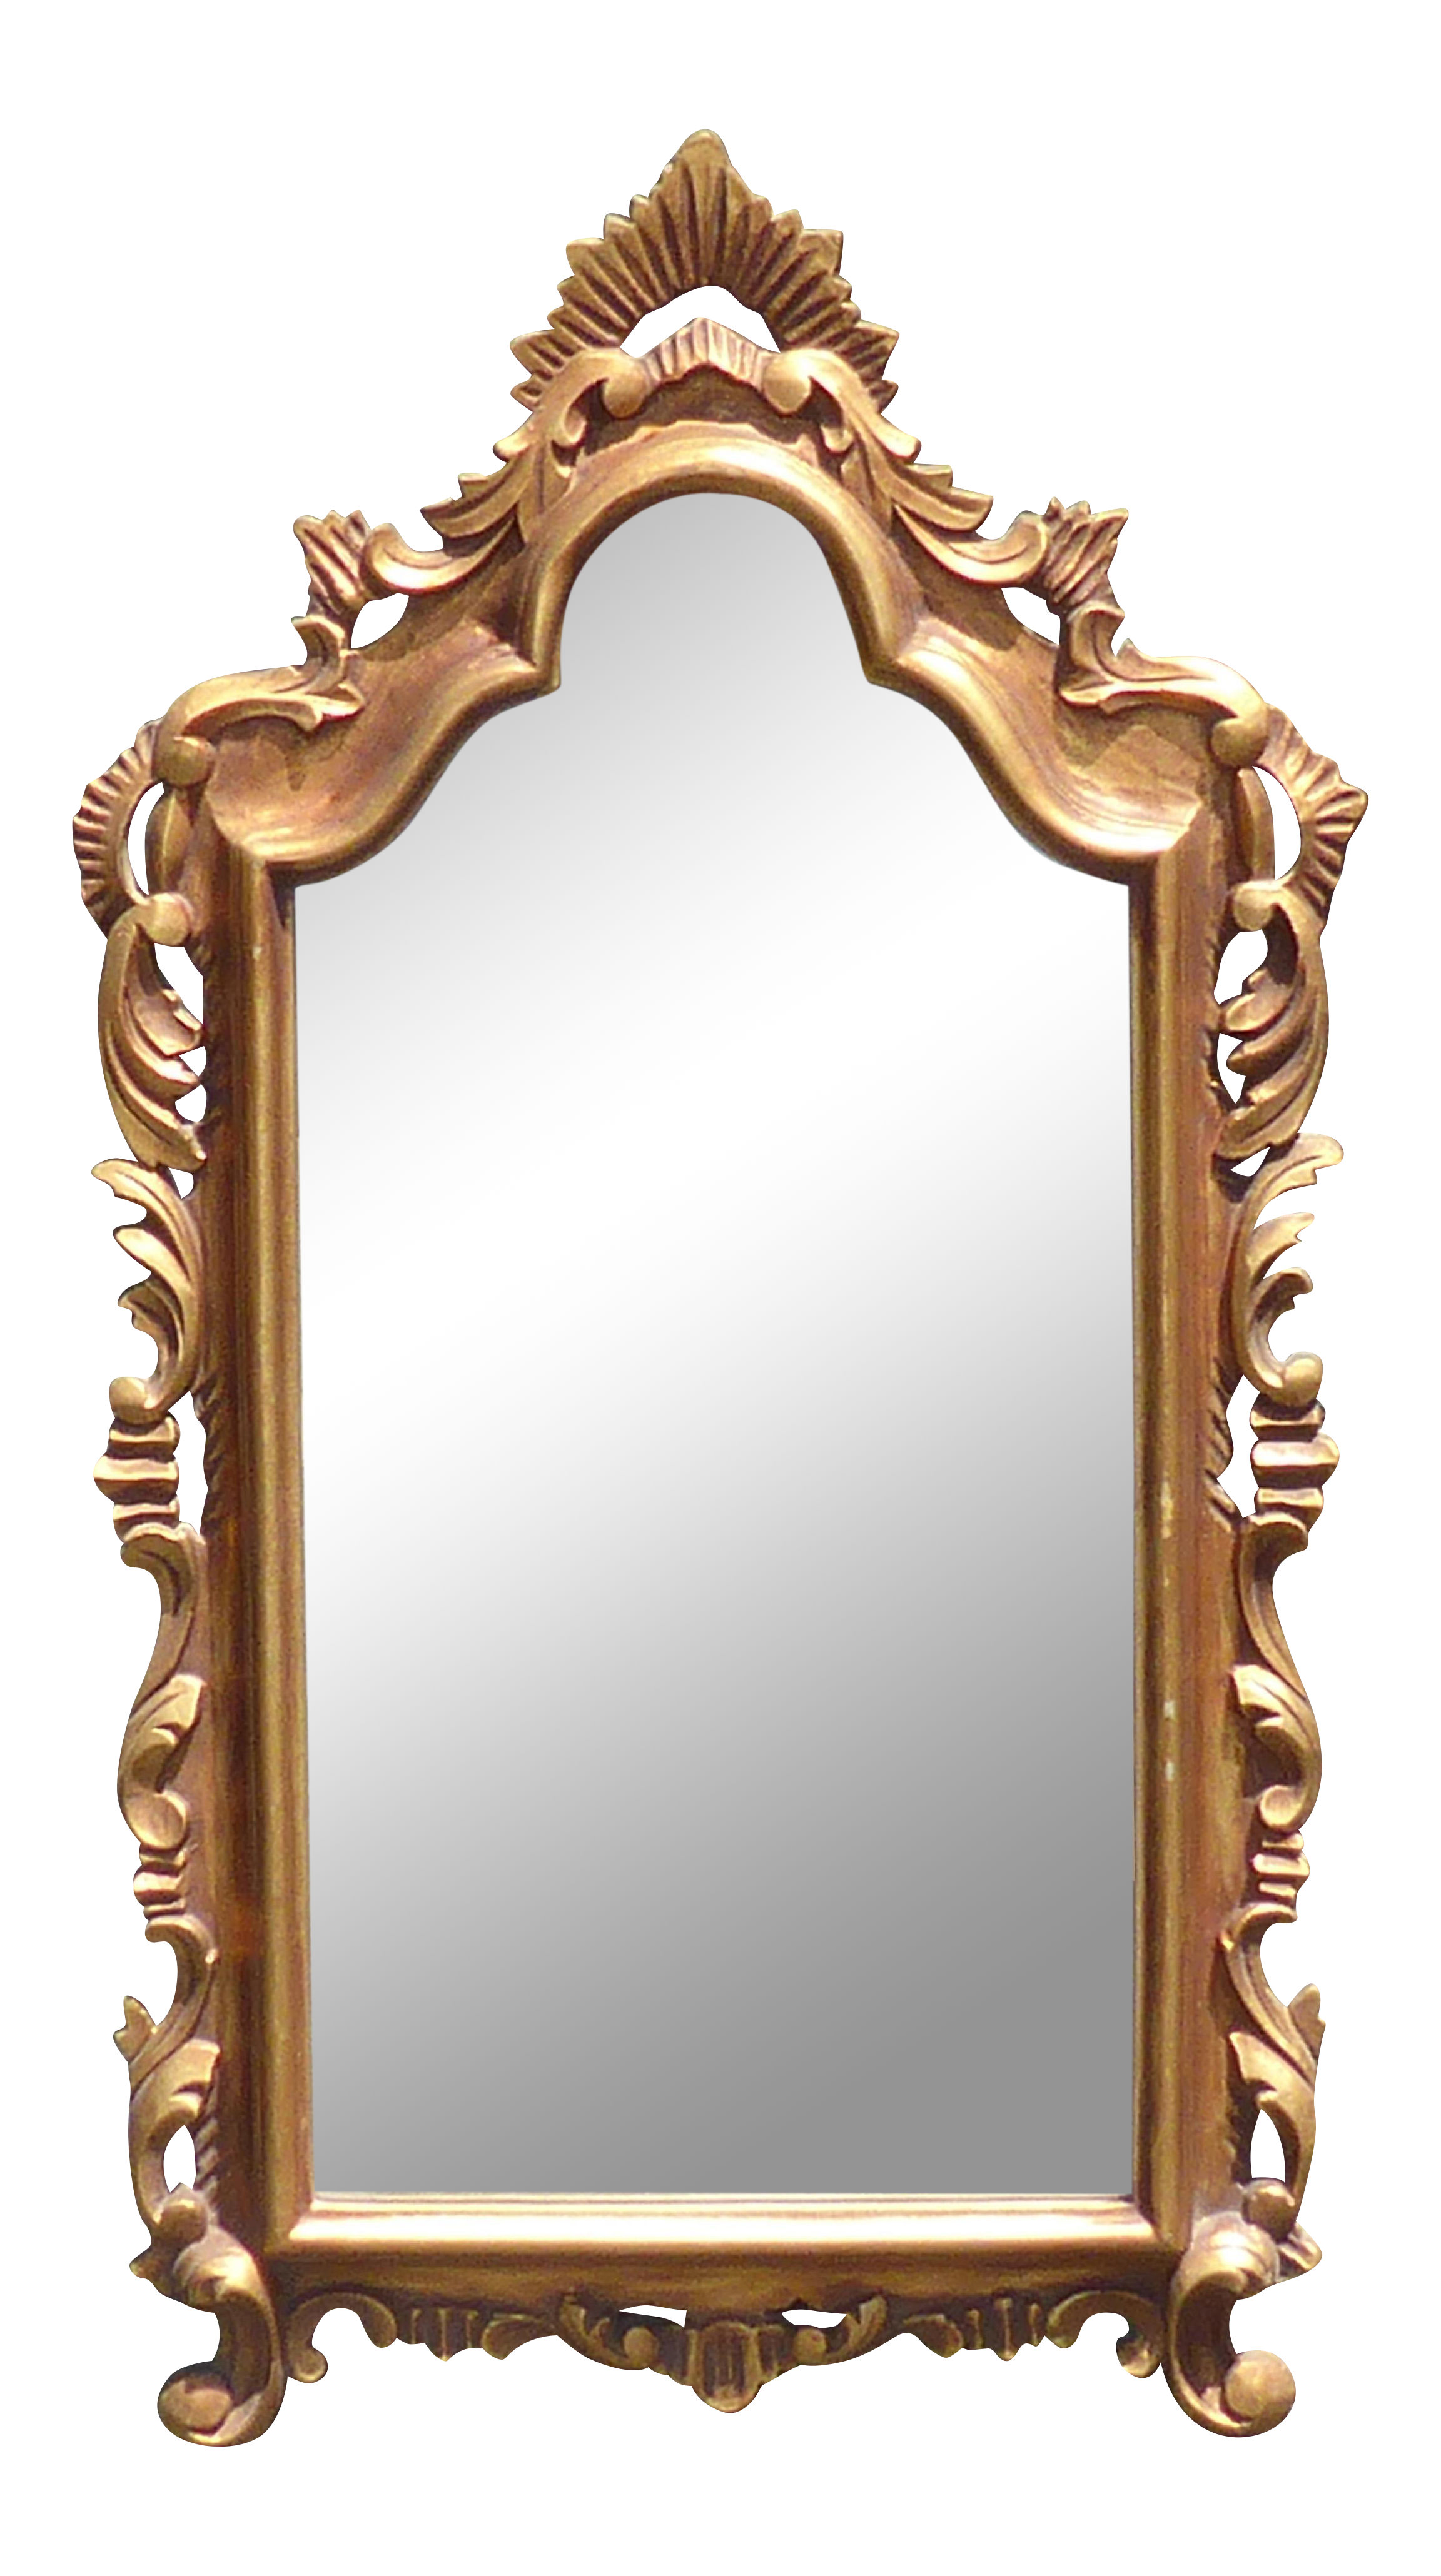 Vintage mirror png. French provincial style gold